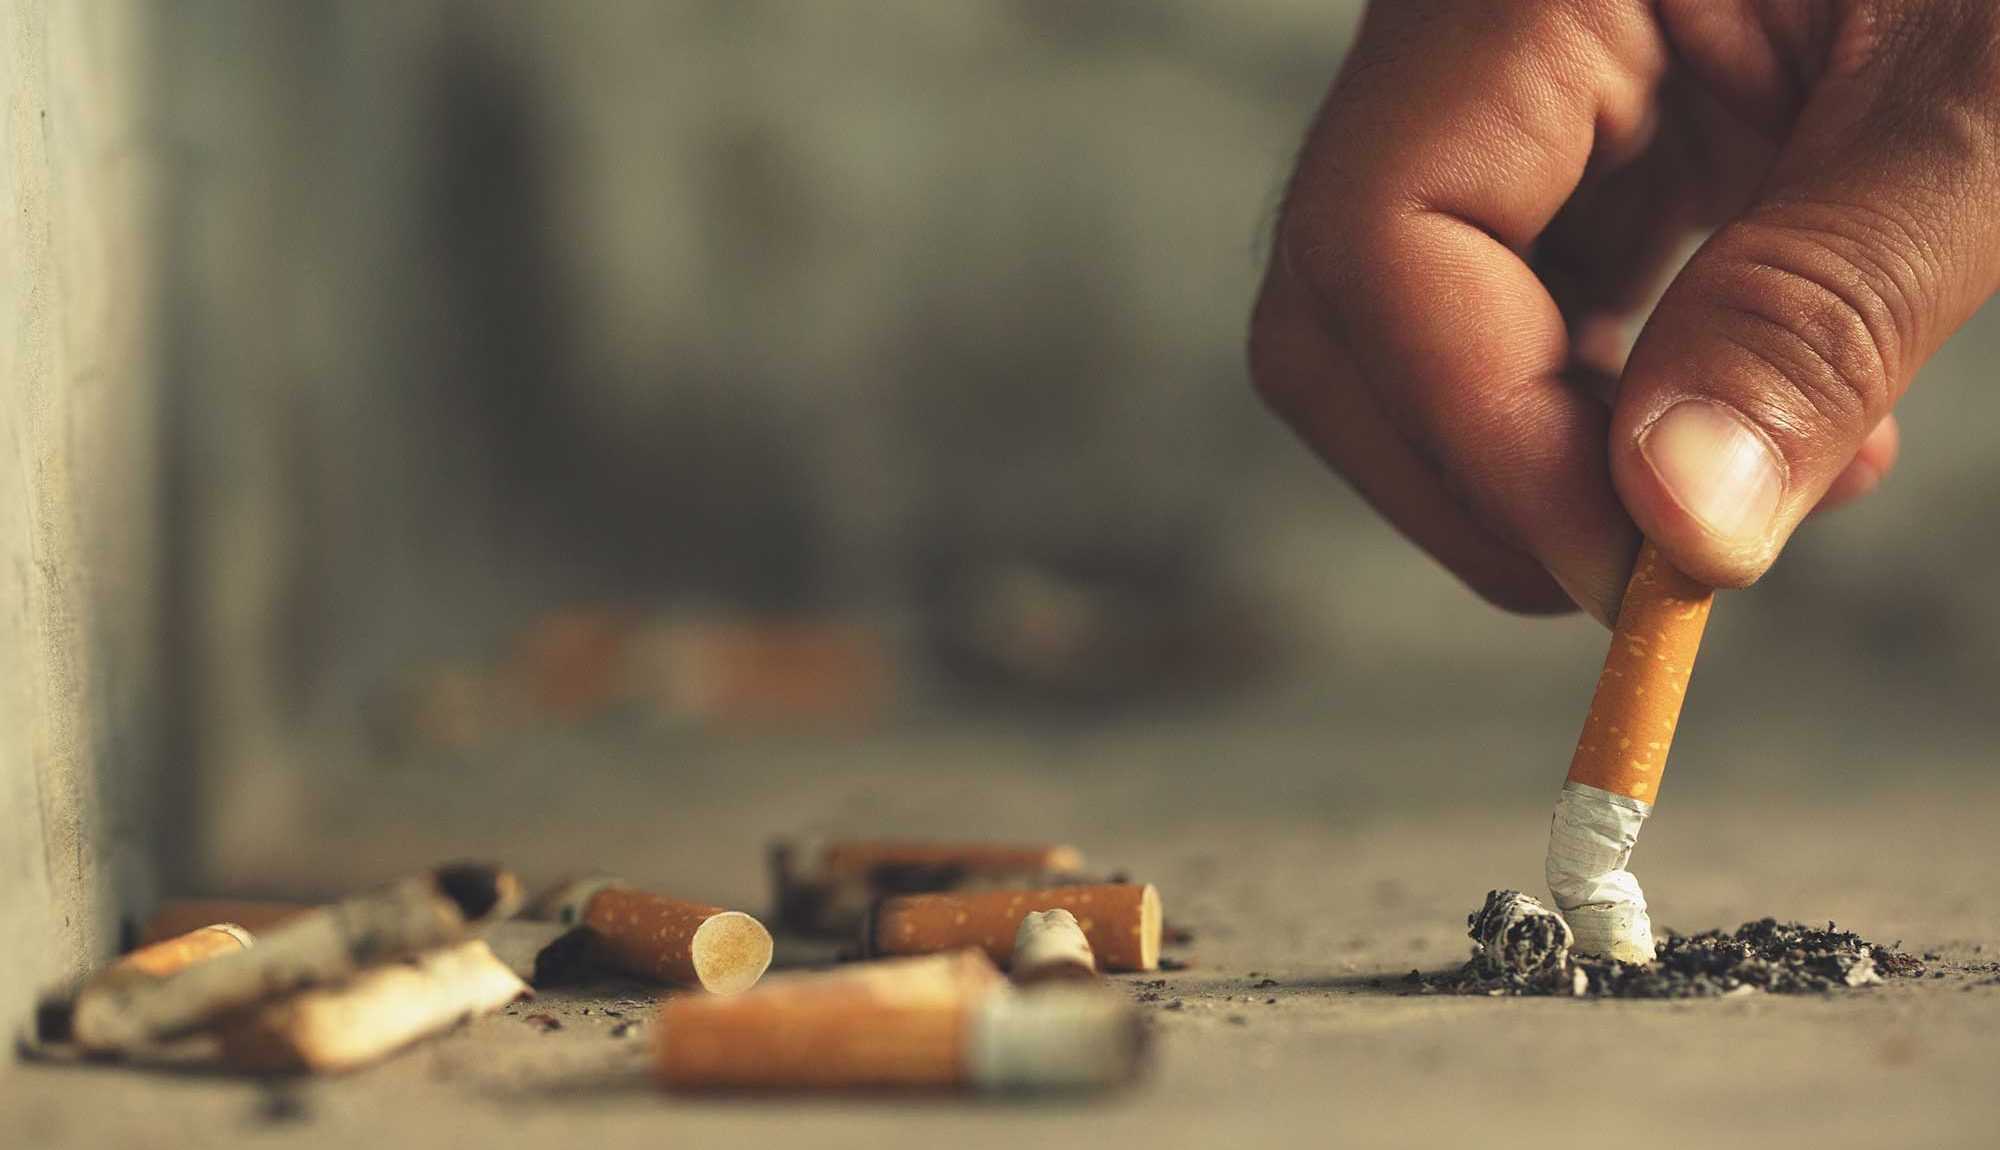 oxfordshire planning on eliminating smoking from the county